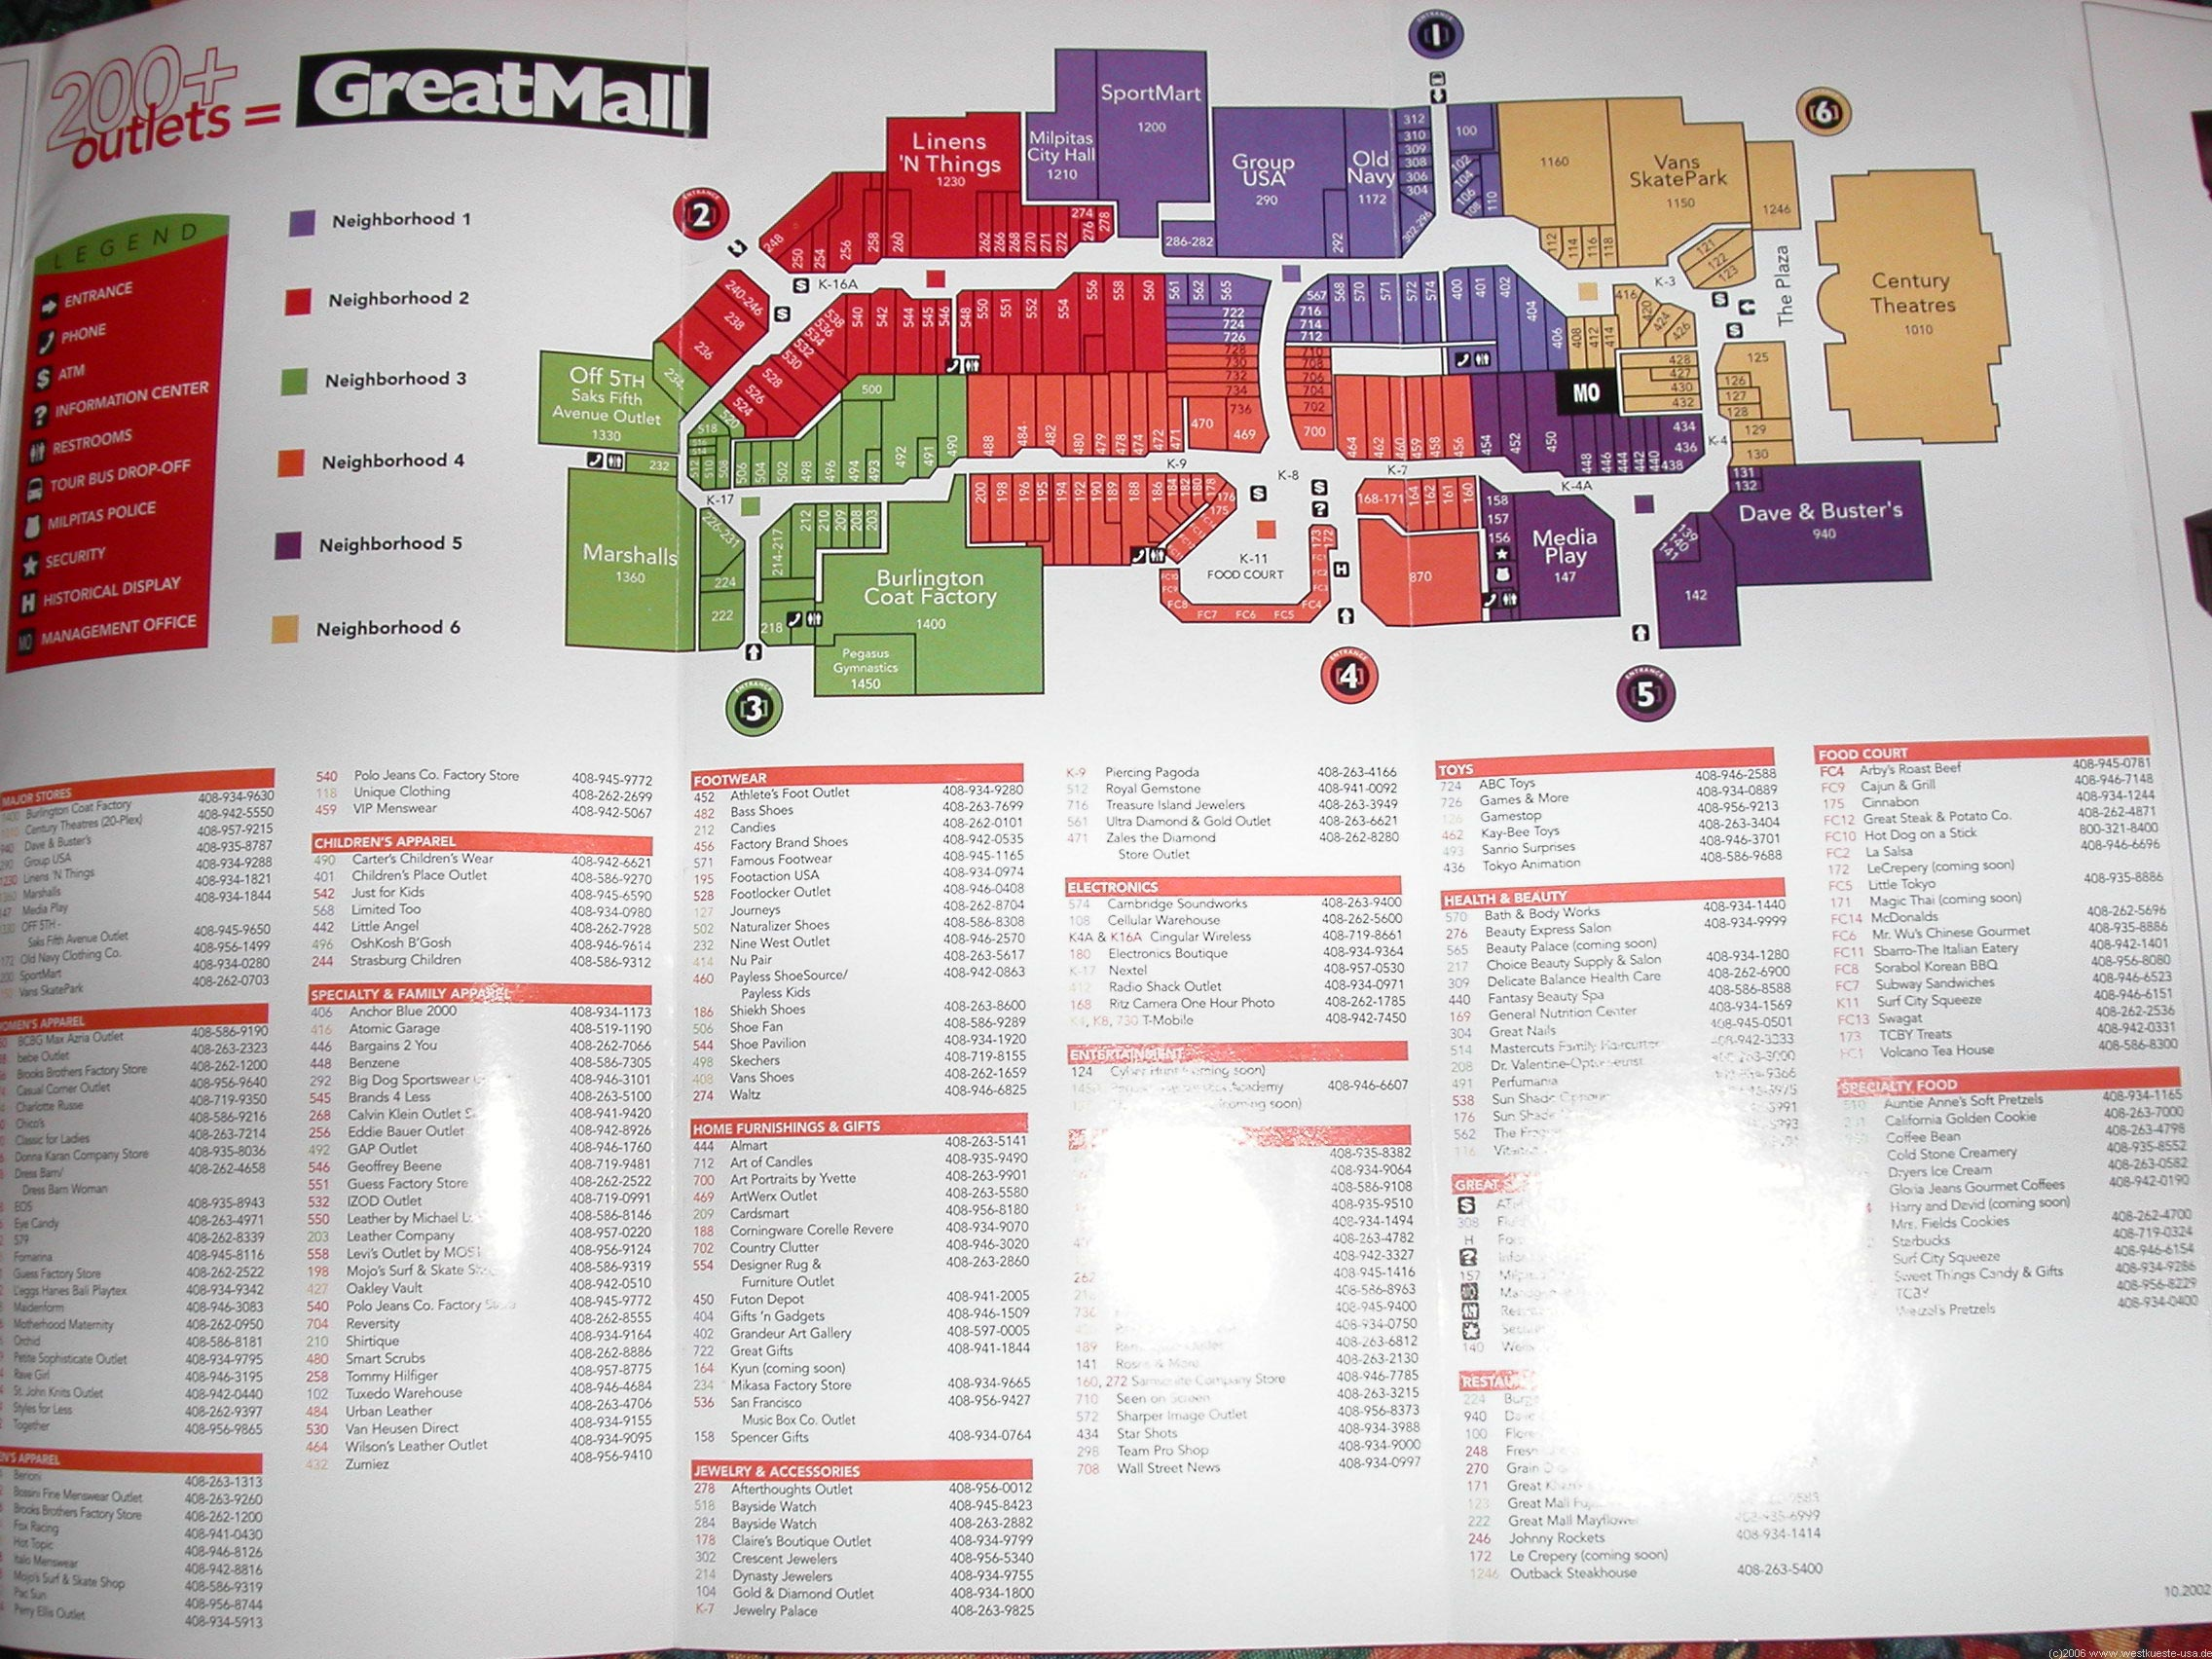 Great Mall Milpitas Directory Map My Blog - San jose great mall map